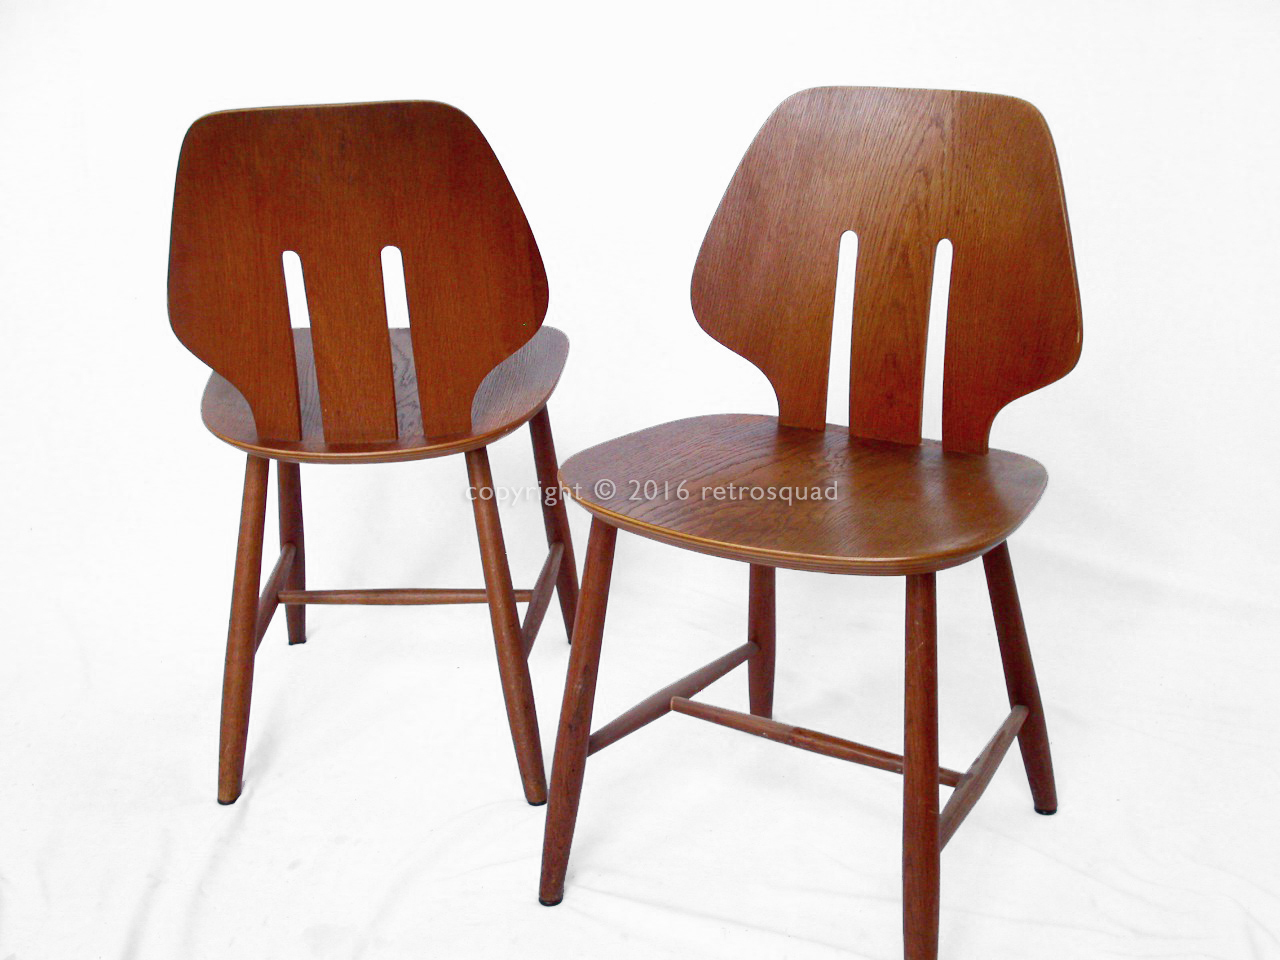 6 Modern Dining Chairs By Ejvind A. Johanss For FDB Mobler Vintage 1960 10